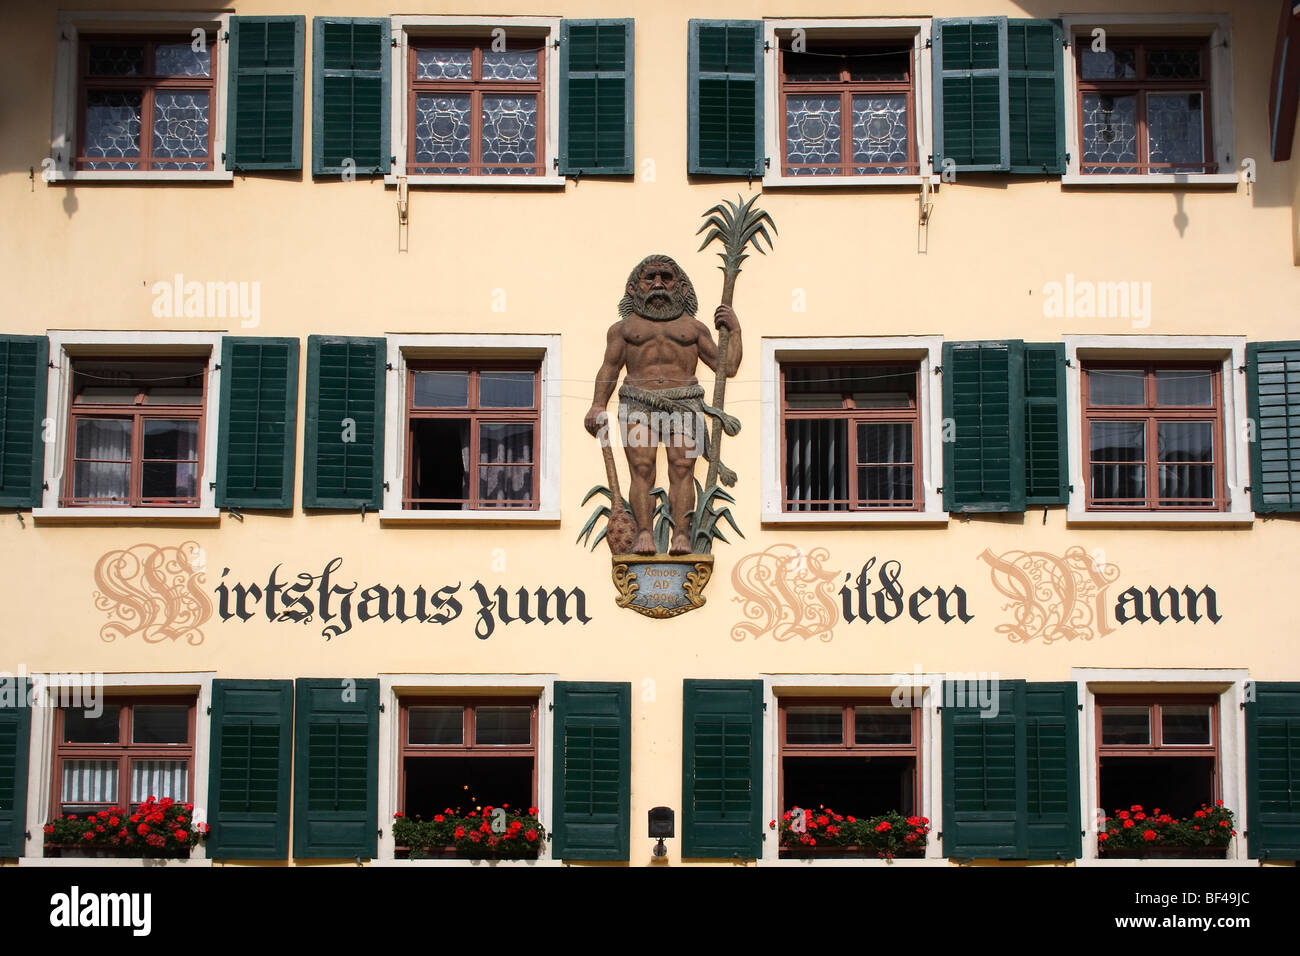 Fassade frontal  Window facade, Wirtshaus zum Wilden Man restaurant, pedestrian ...